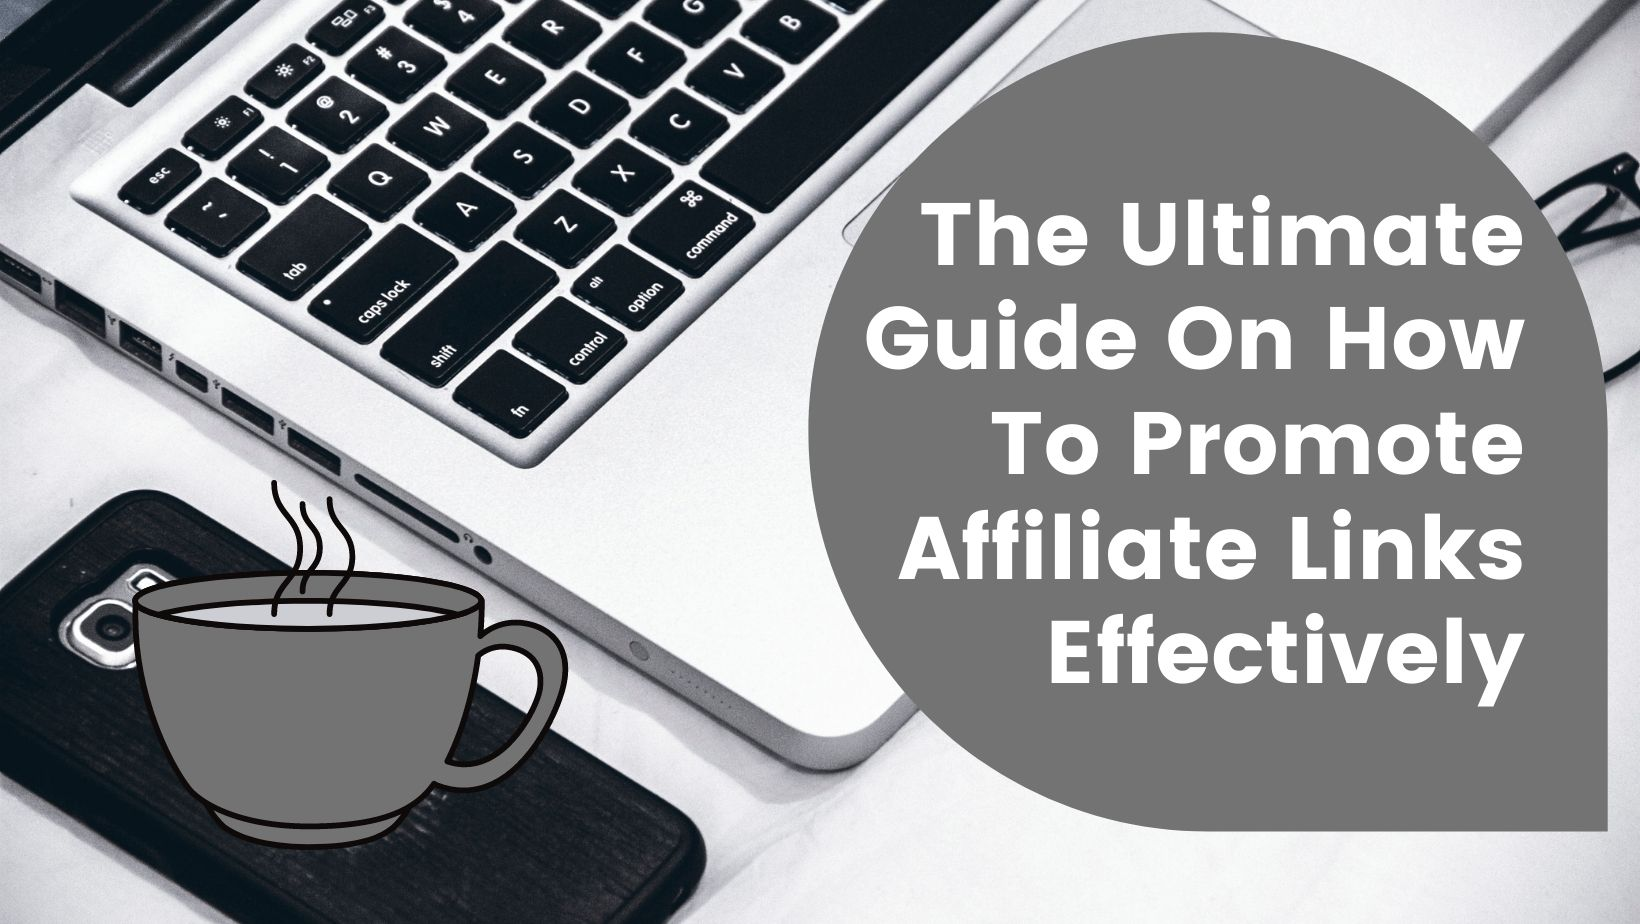 The-Ultimate-Guide-on-How-to-Promote-Affiliate-Links-Effectively